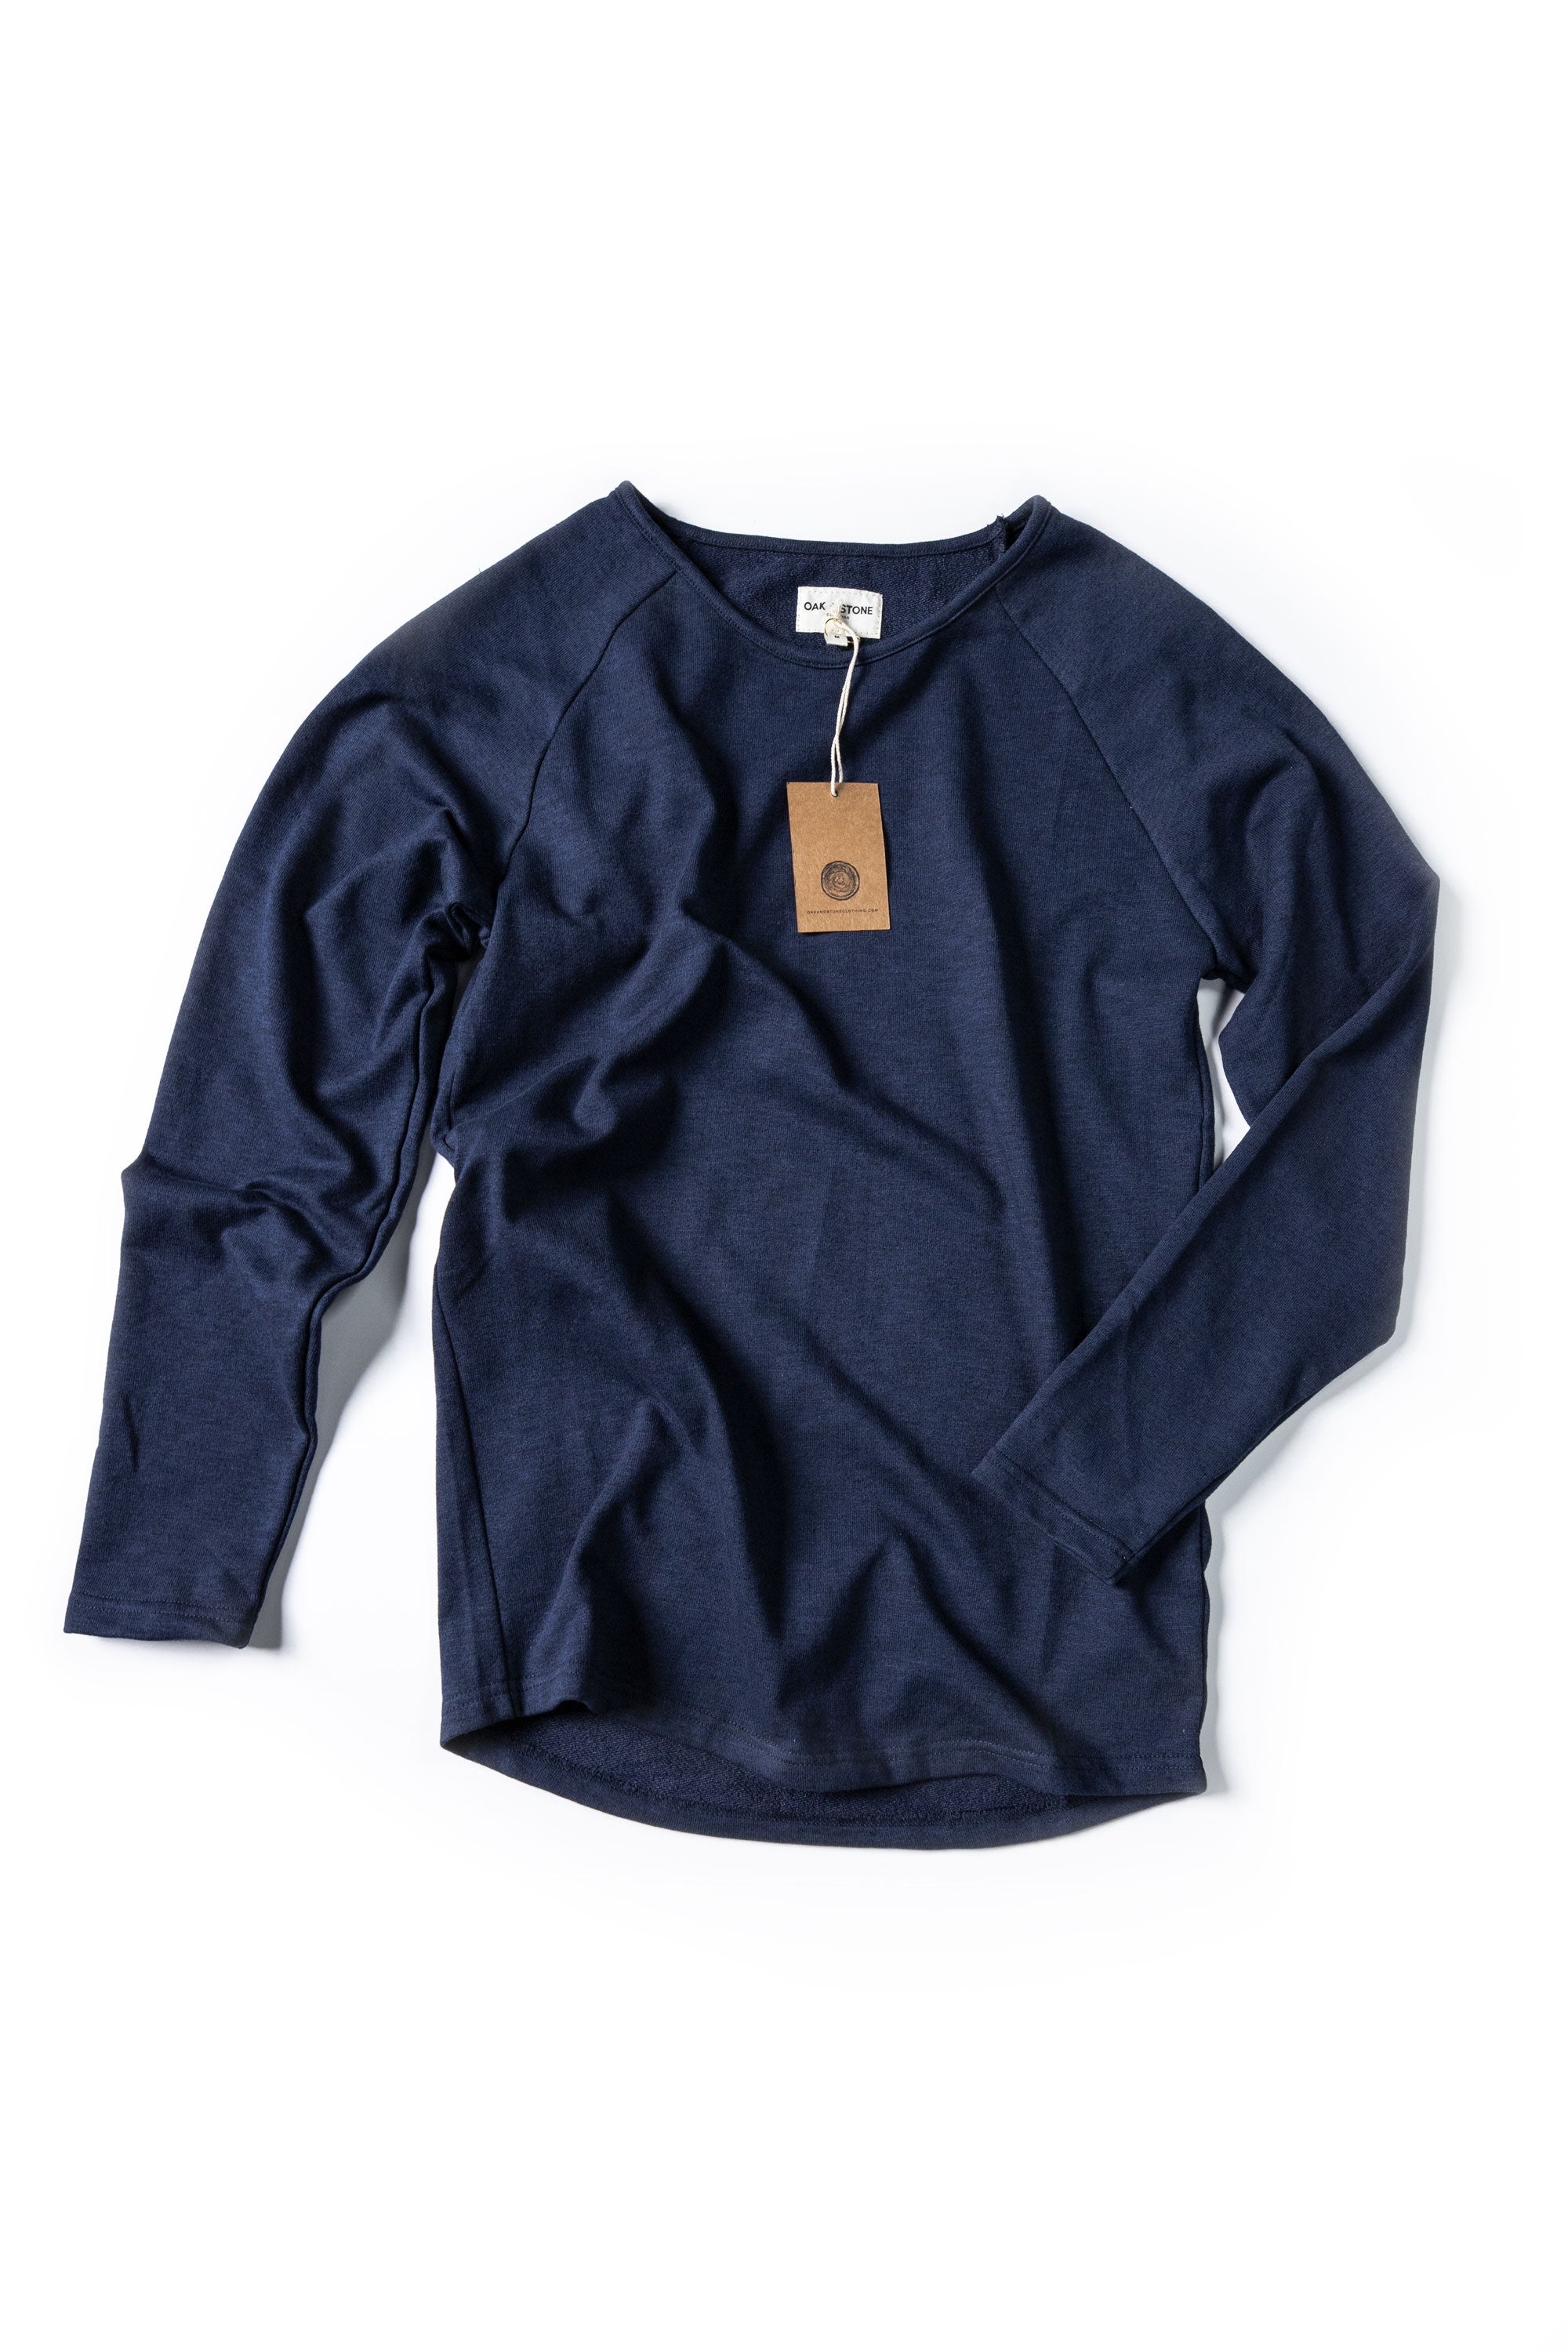 Terry Sweater - Heathered Blue - Oak & Stone Clothing Co.